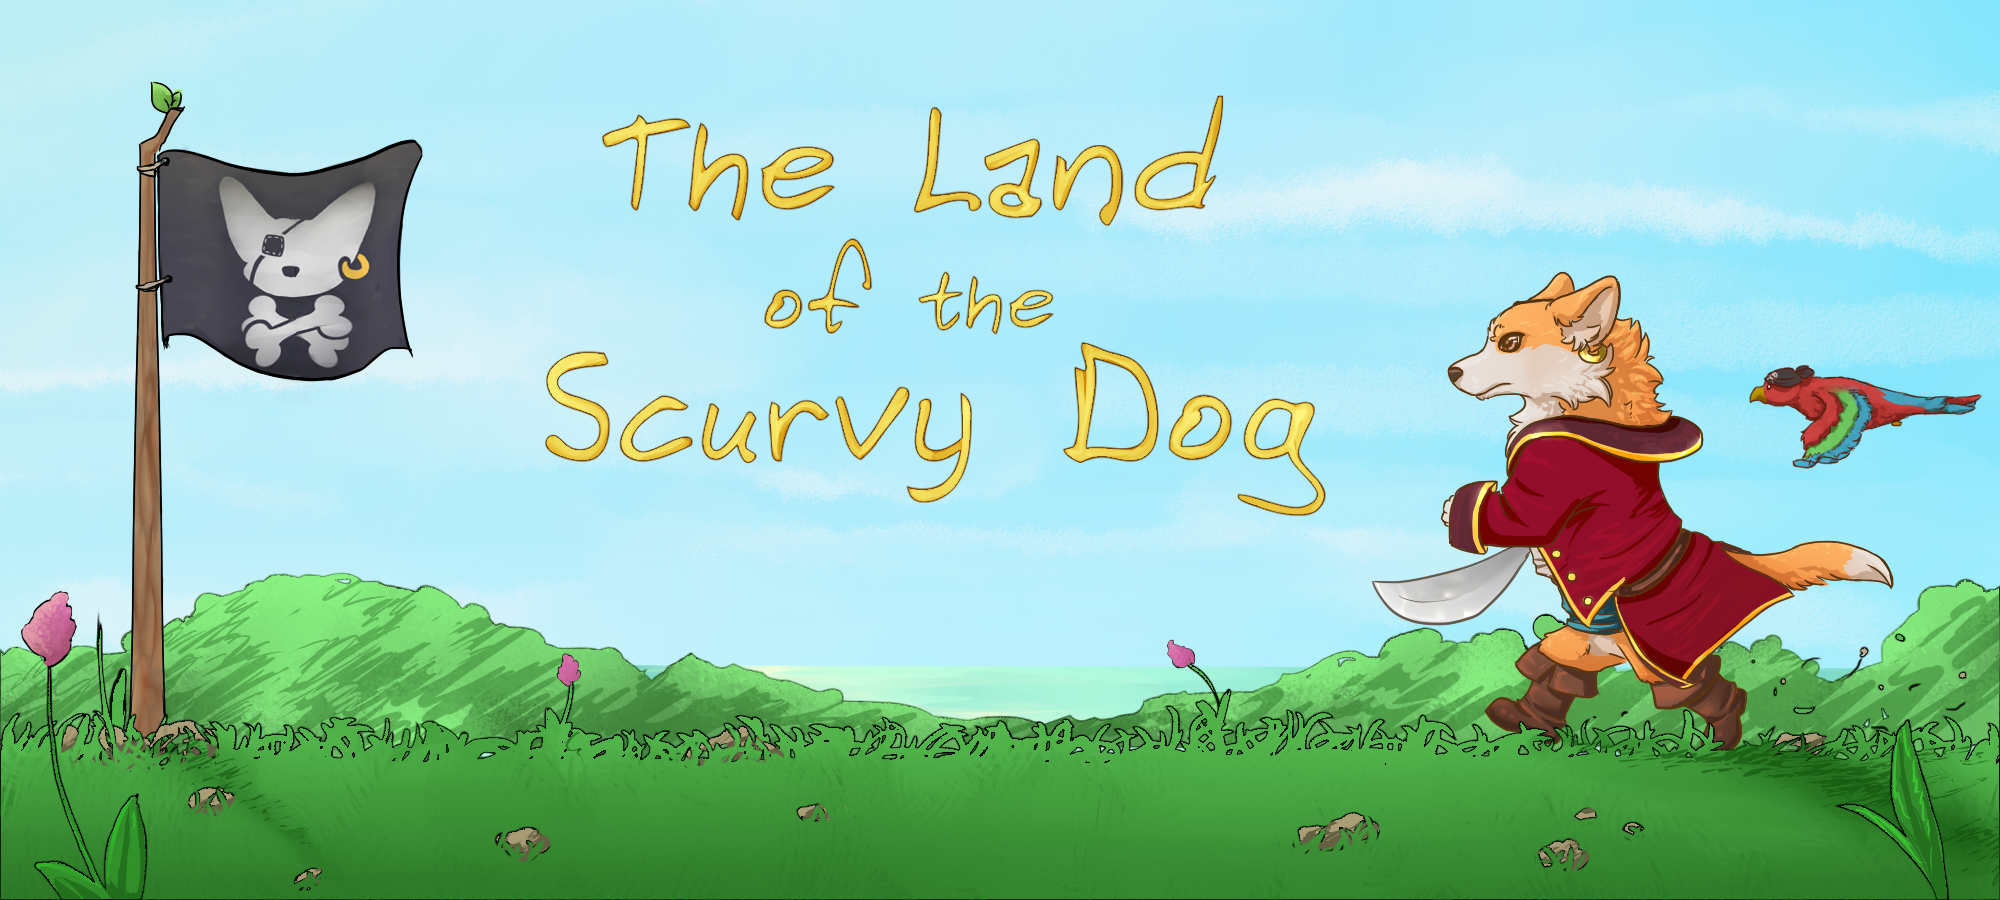 The Land of the Scurvy Dog